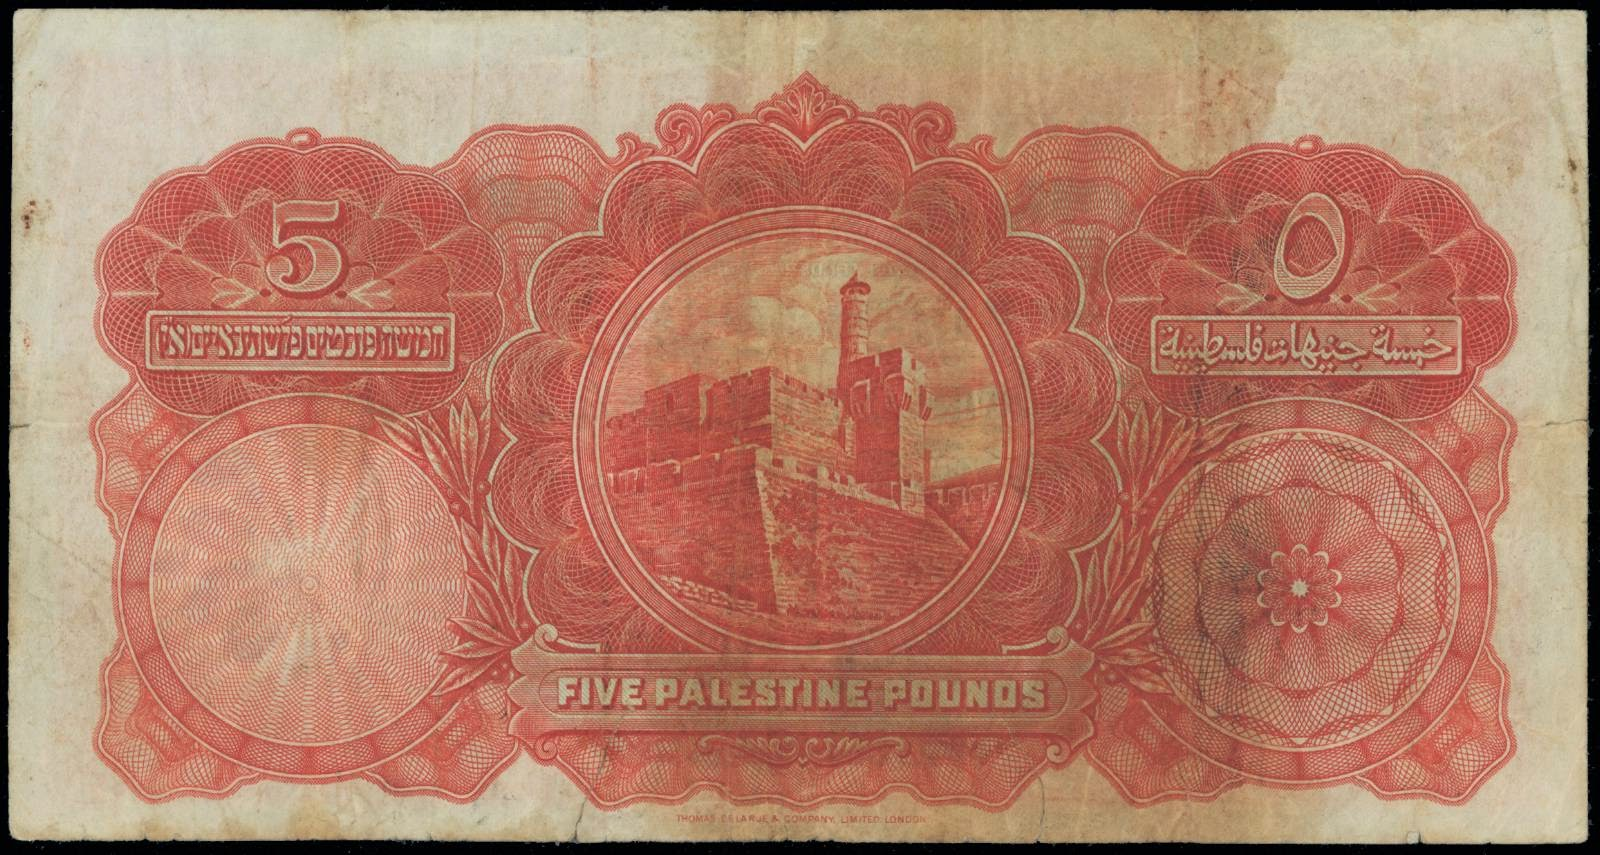 Five Palestine Pounds banknote